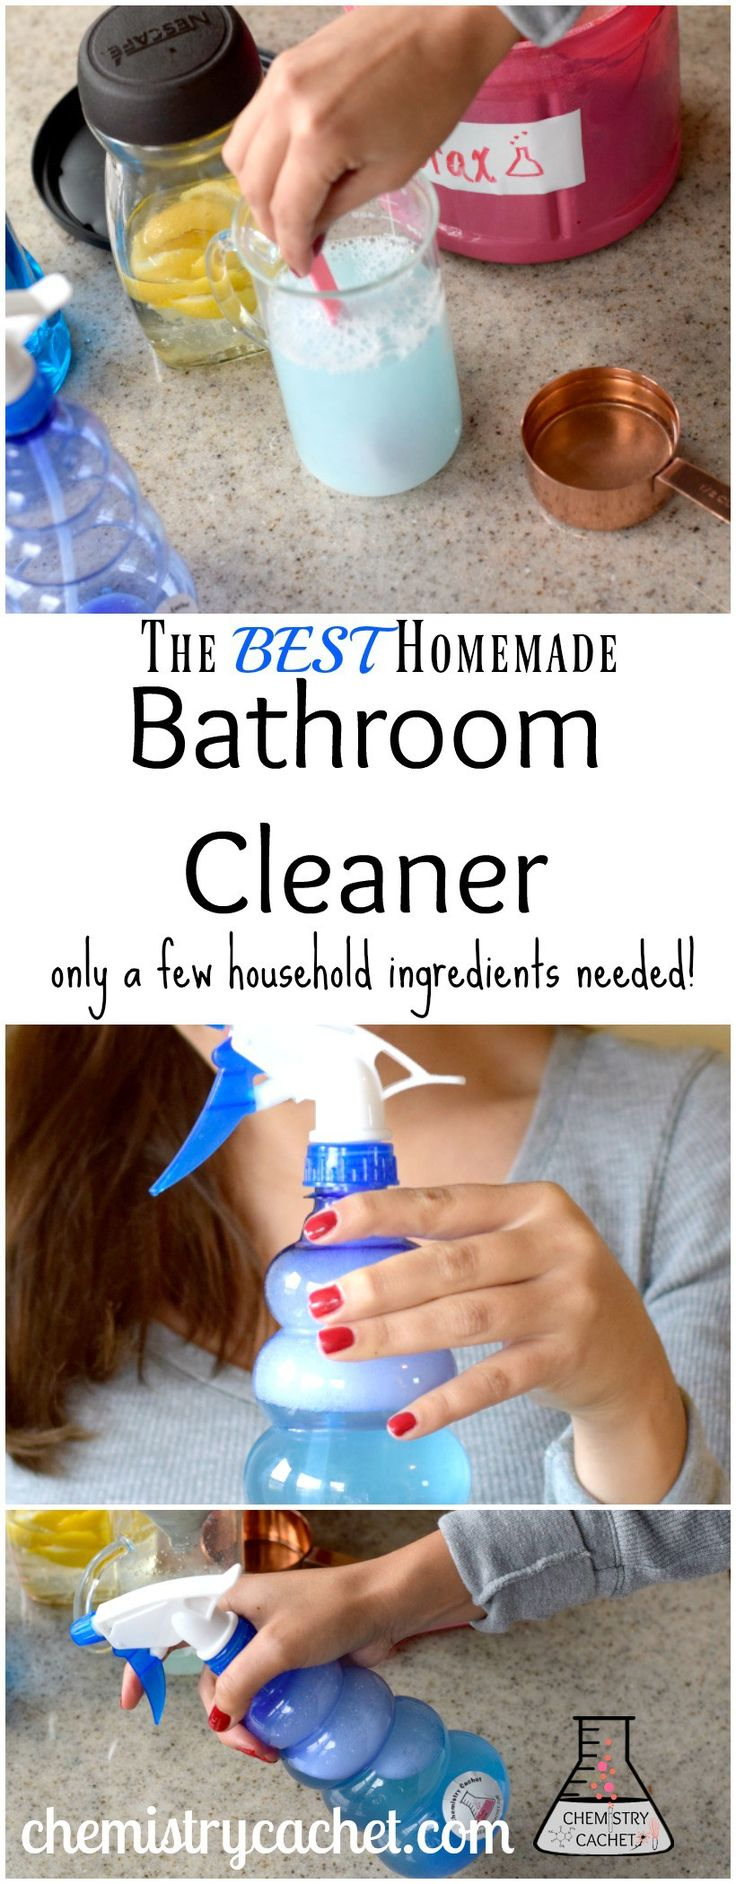 This is the BEST homemade bathroom cleaner. No special ingredients needed, just basic household items. Simple bathroom cleaner that works! Video tutorial on chemistrycachet.com